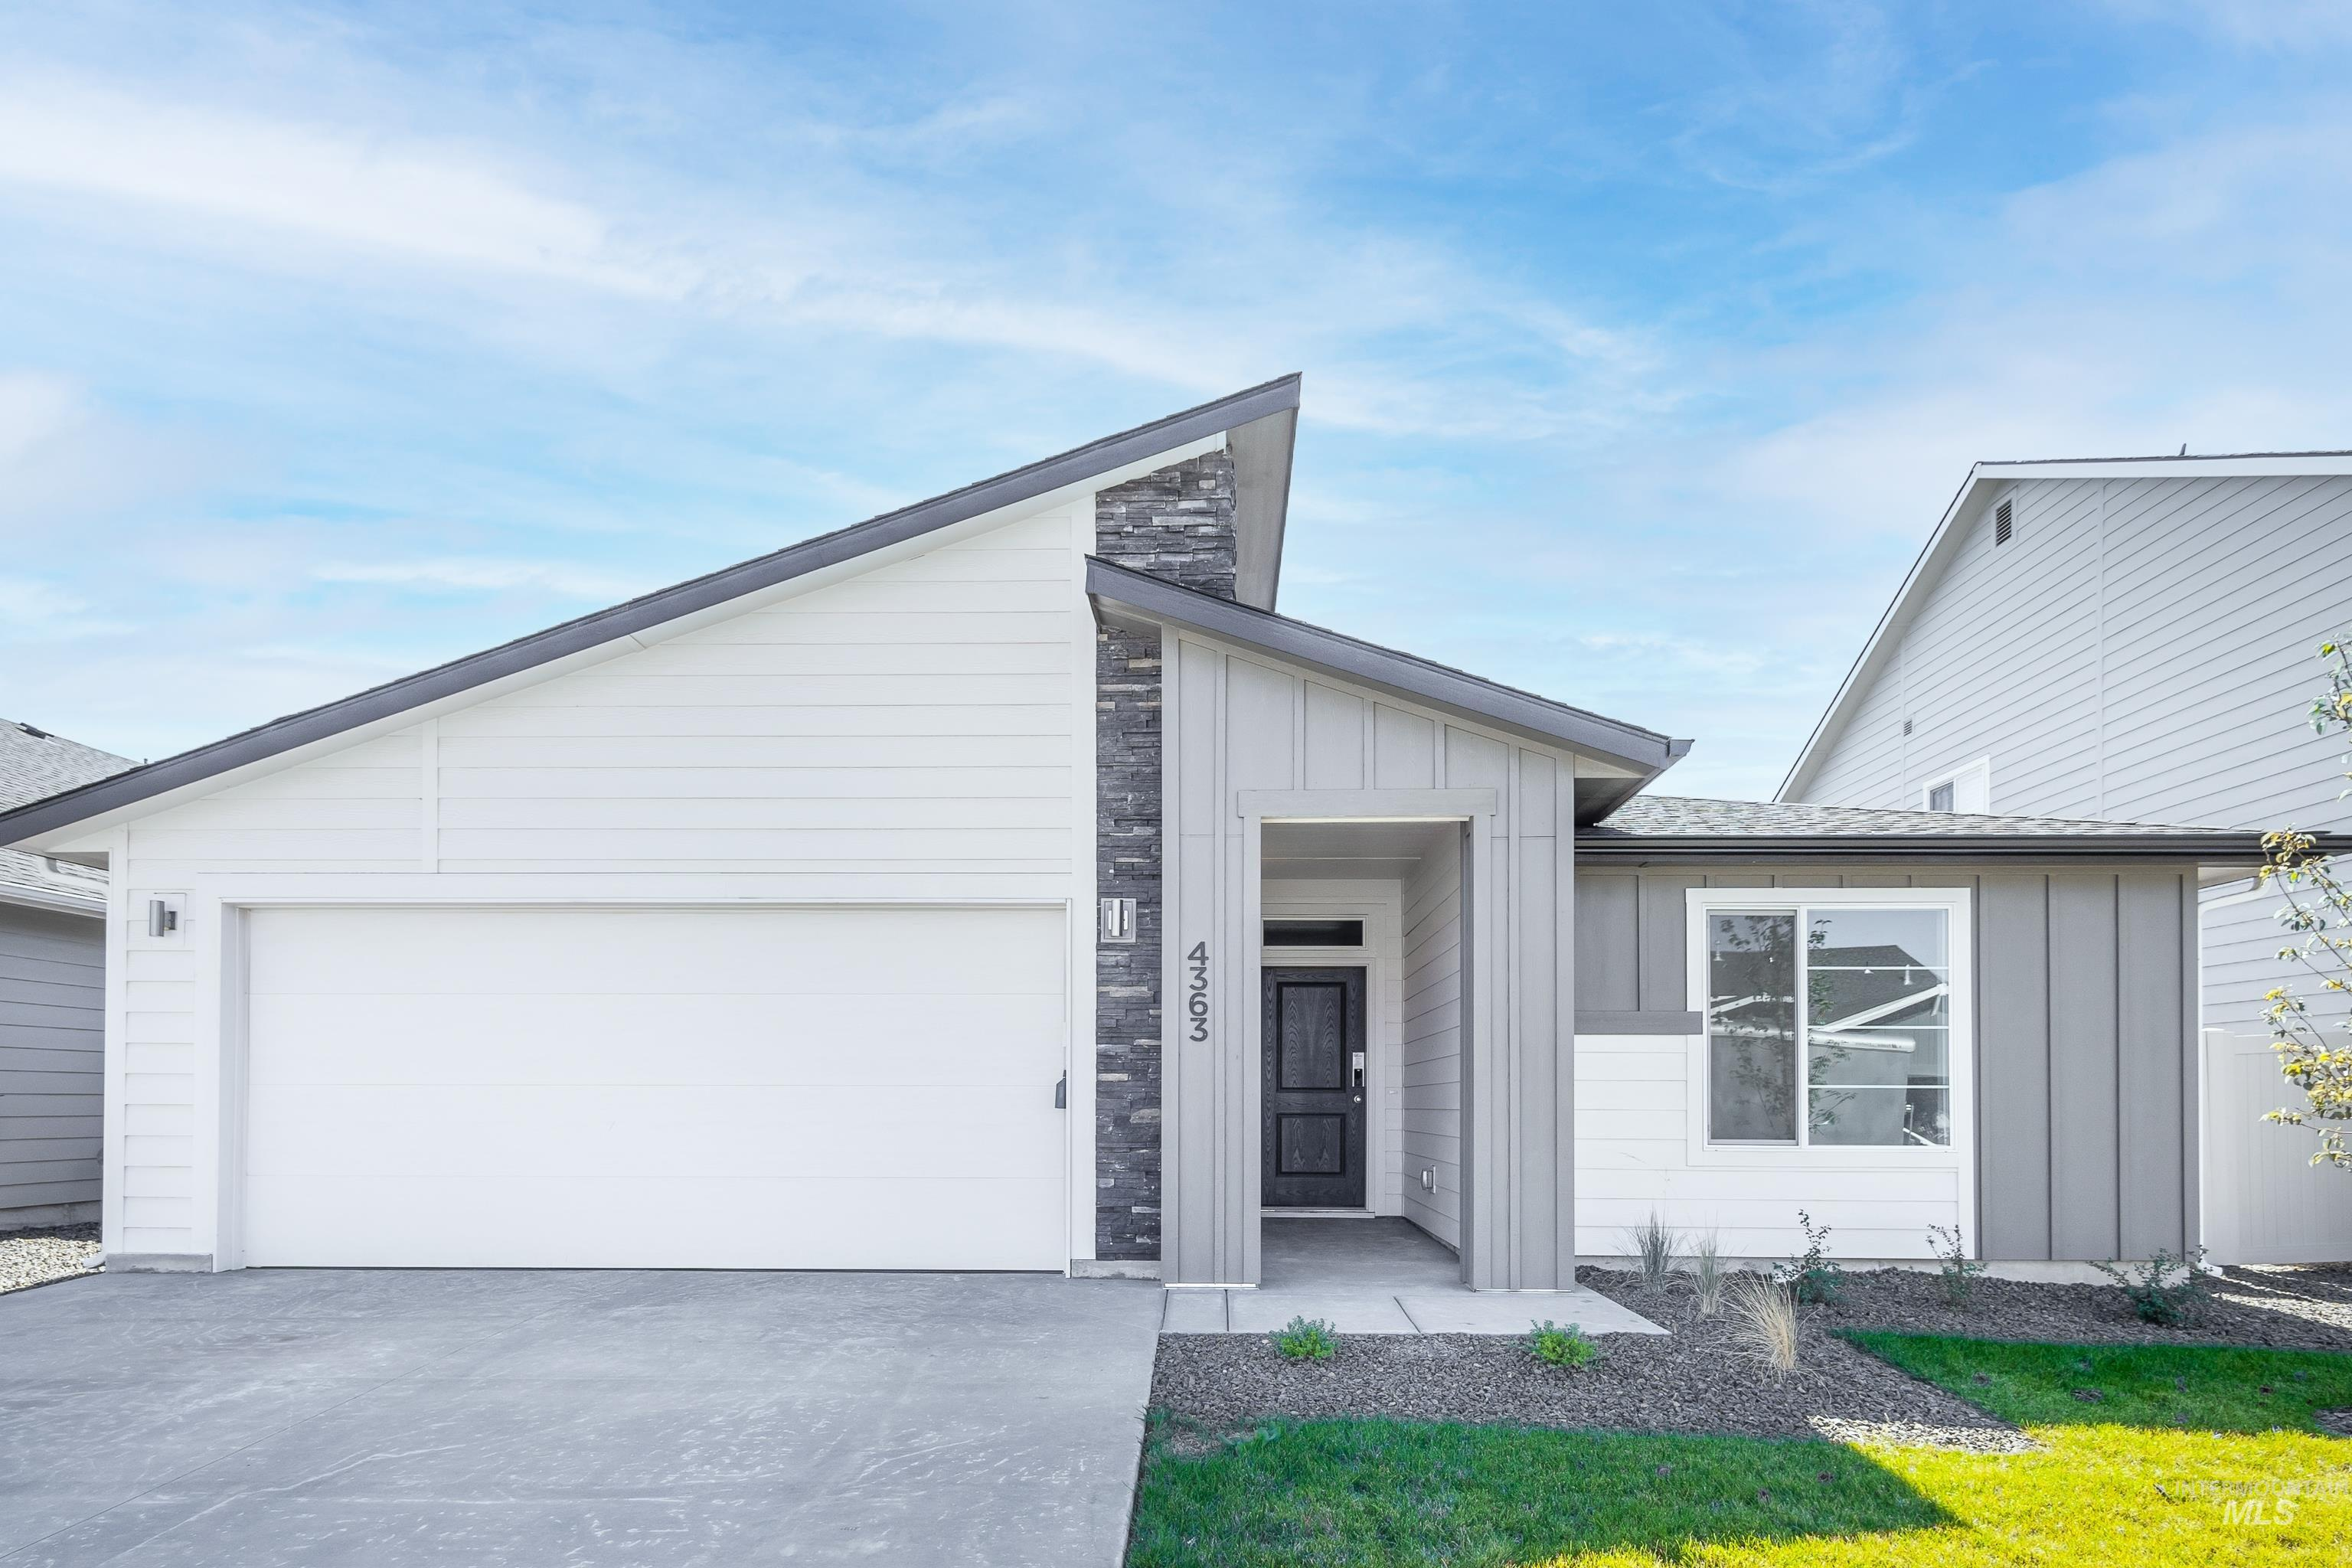 Photo of 4363 Sunny Cove St Meridian ID 83646